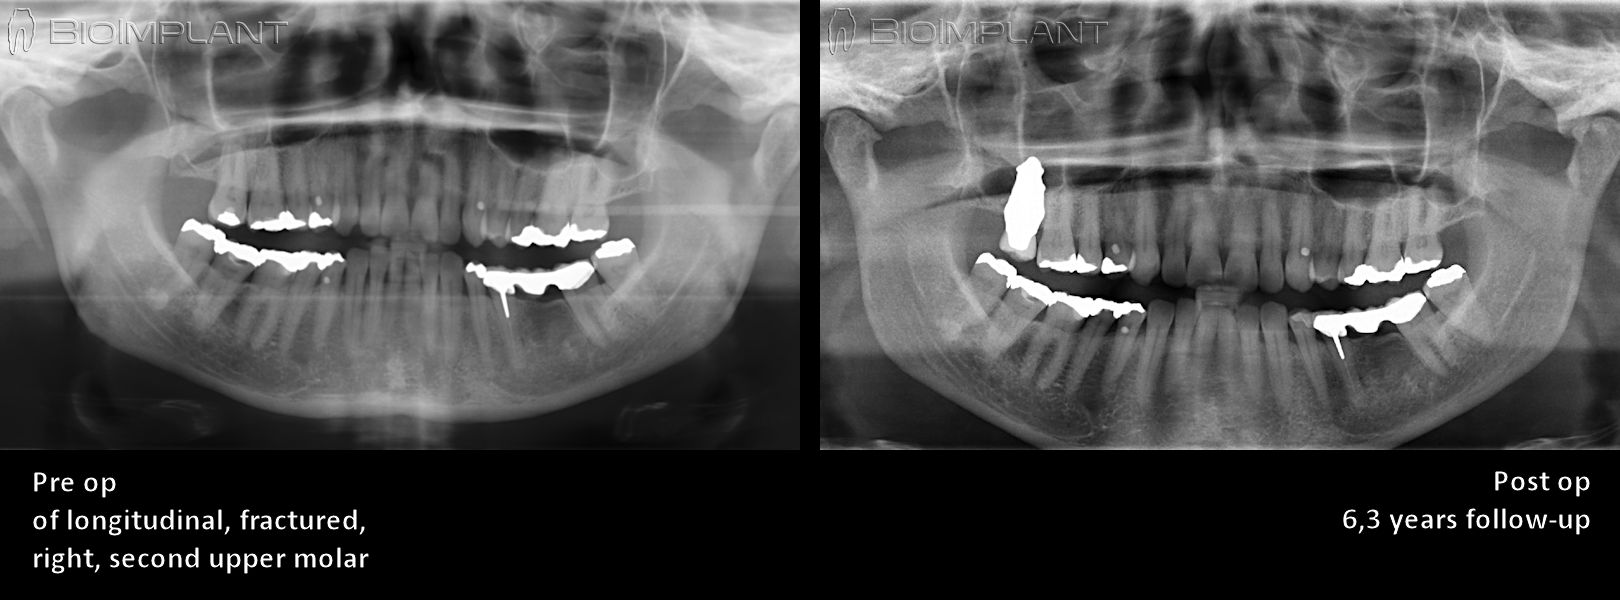 x-ray_replicate_tooth_natural_zirconia_anatomical_rai_toothloss (1)